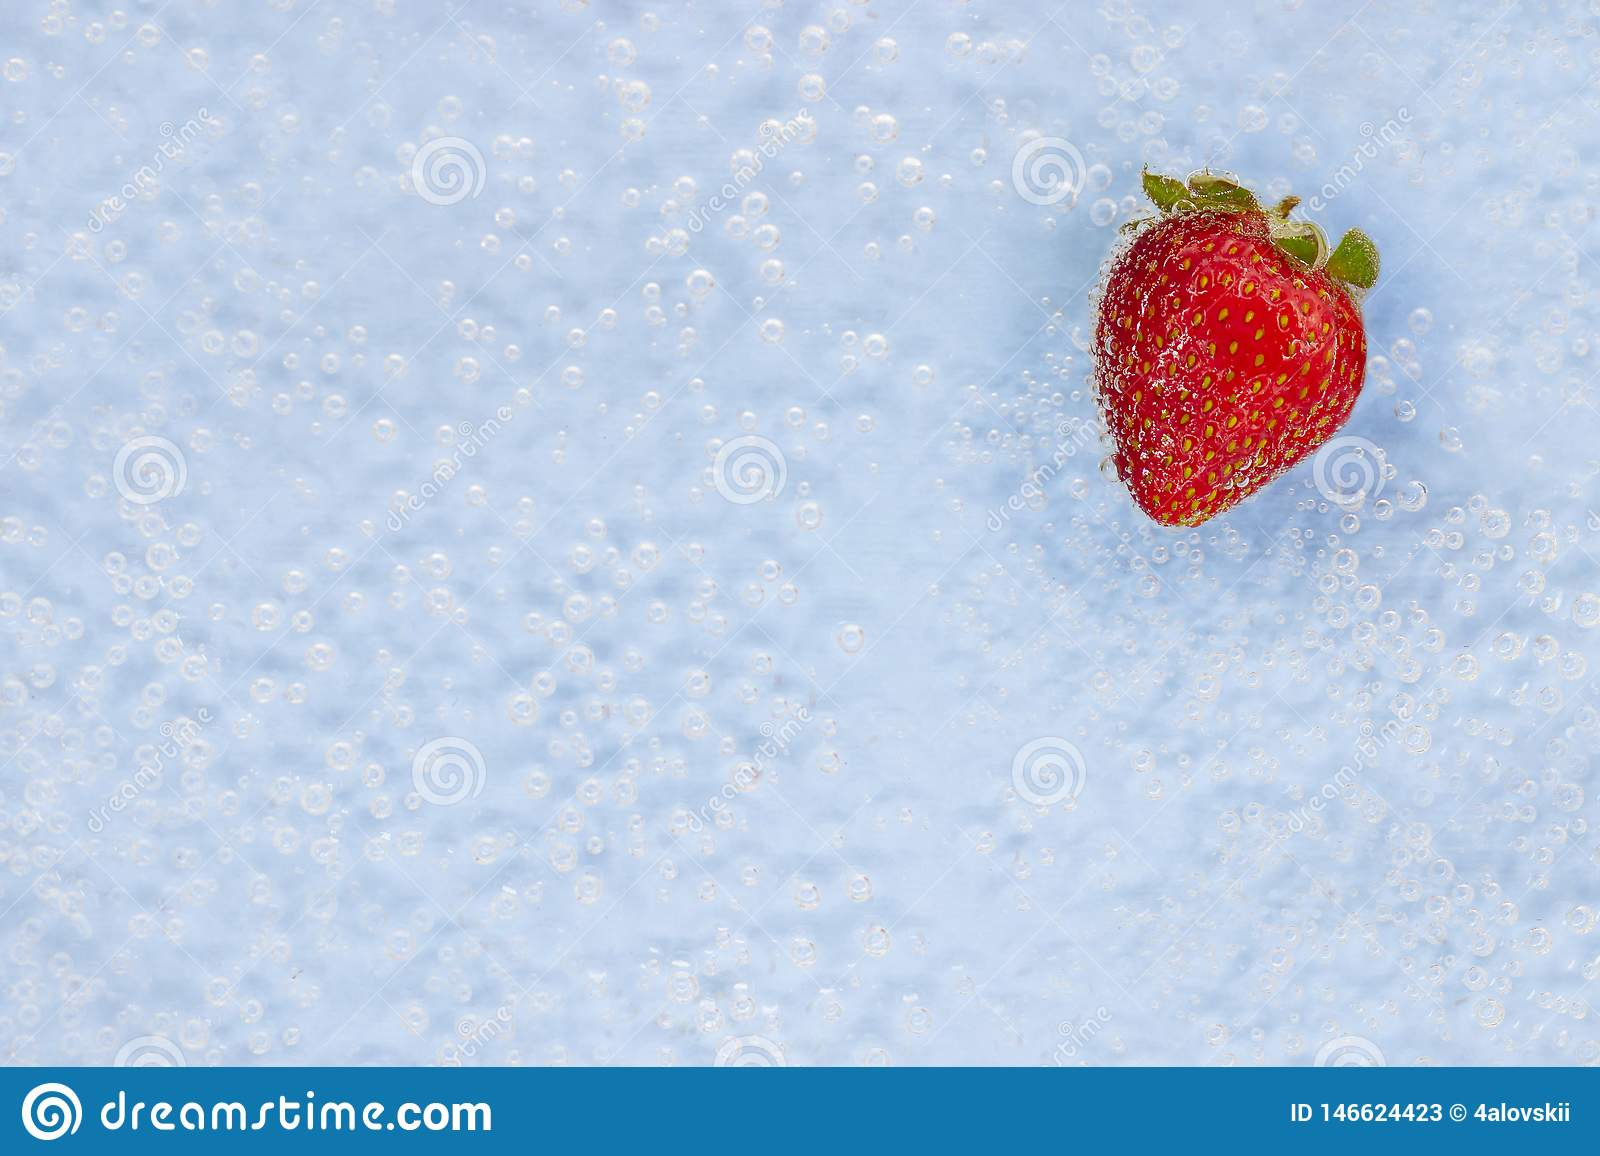 Ripe strawberry in blue water with air bubbles